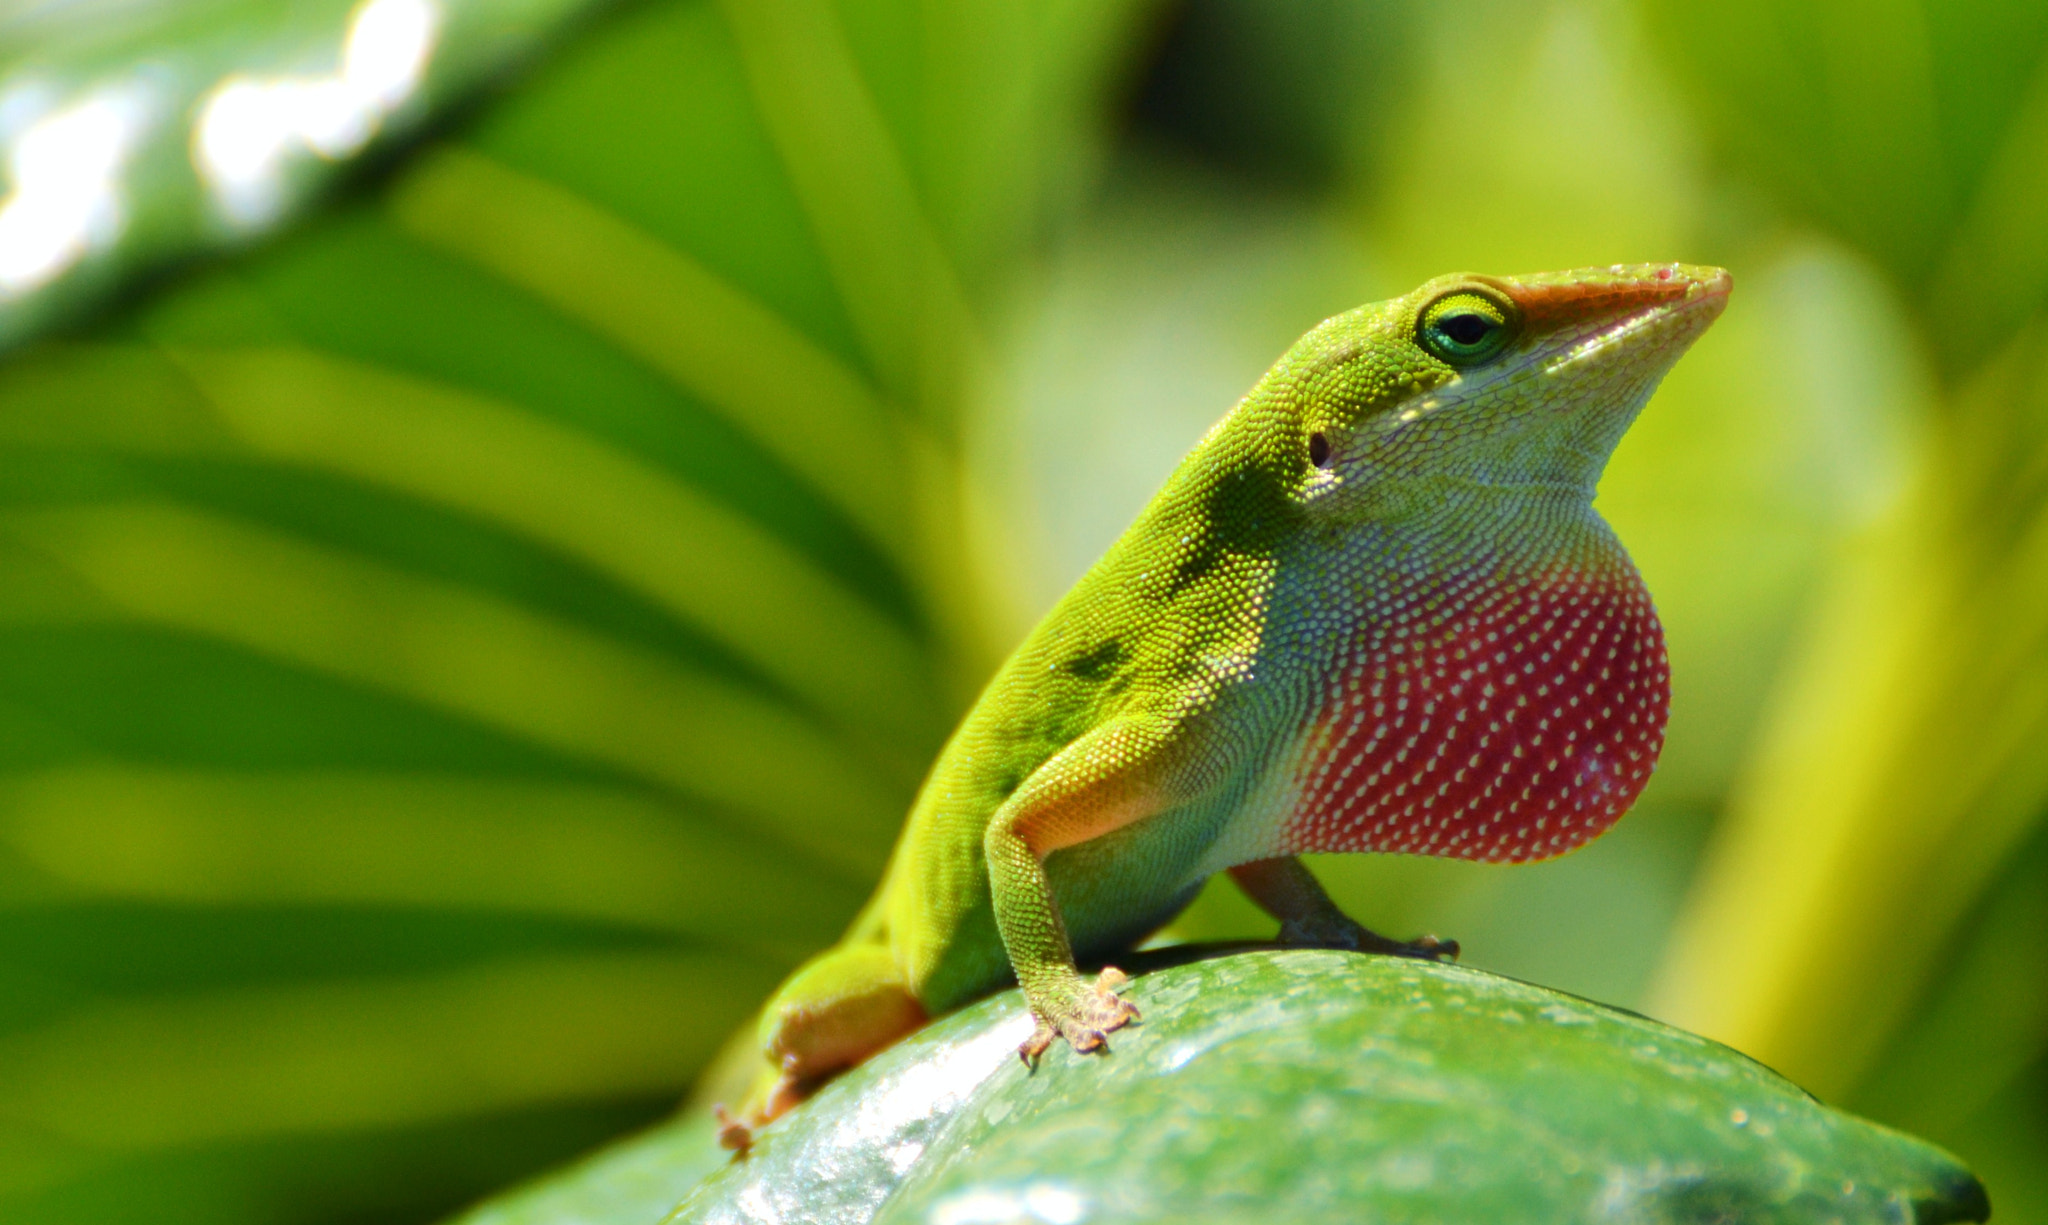 Photograph Green Anole (with Polka Dots) by Michael Fitzsimmons on 500px